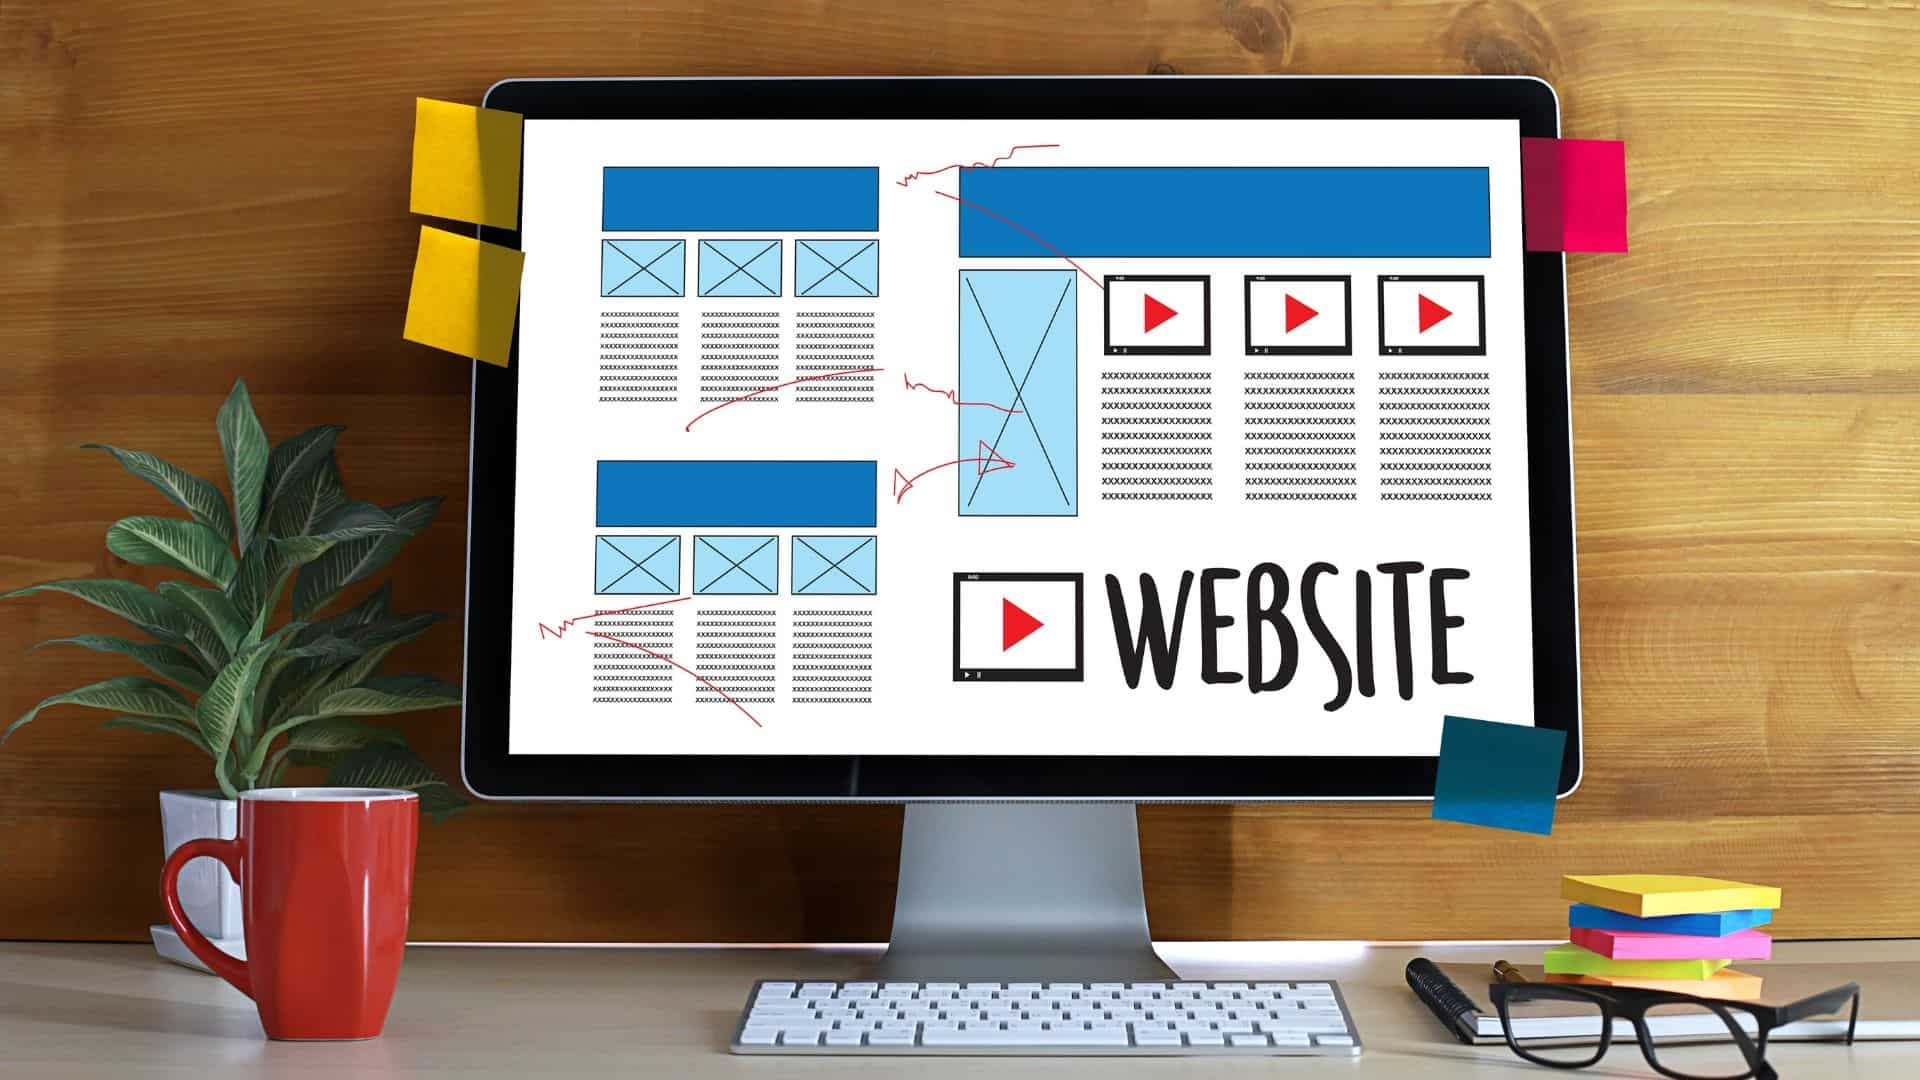 7 Simple Ways to Make Your Web Design Look Good